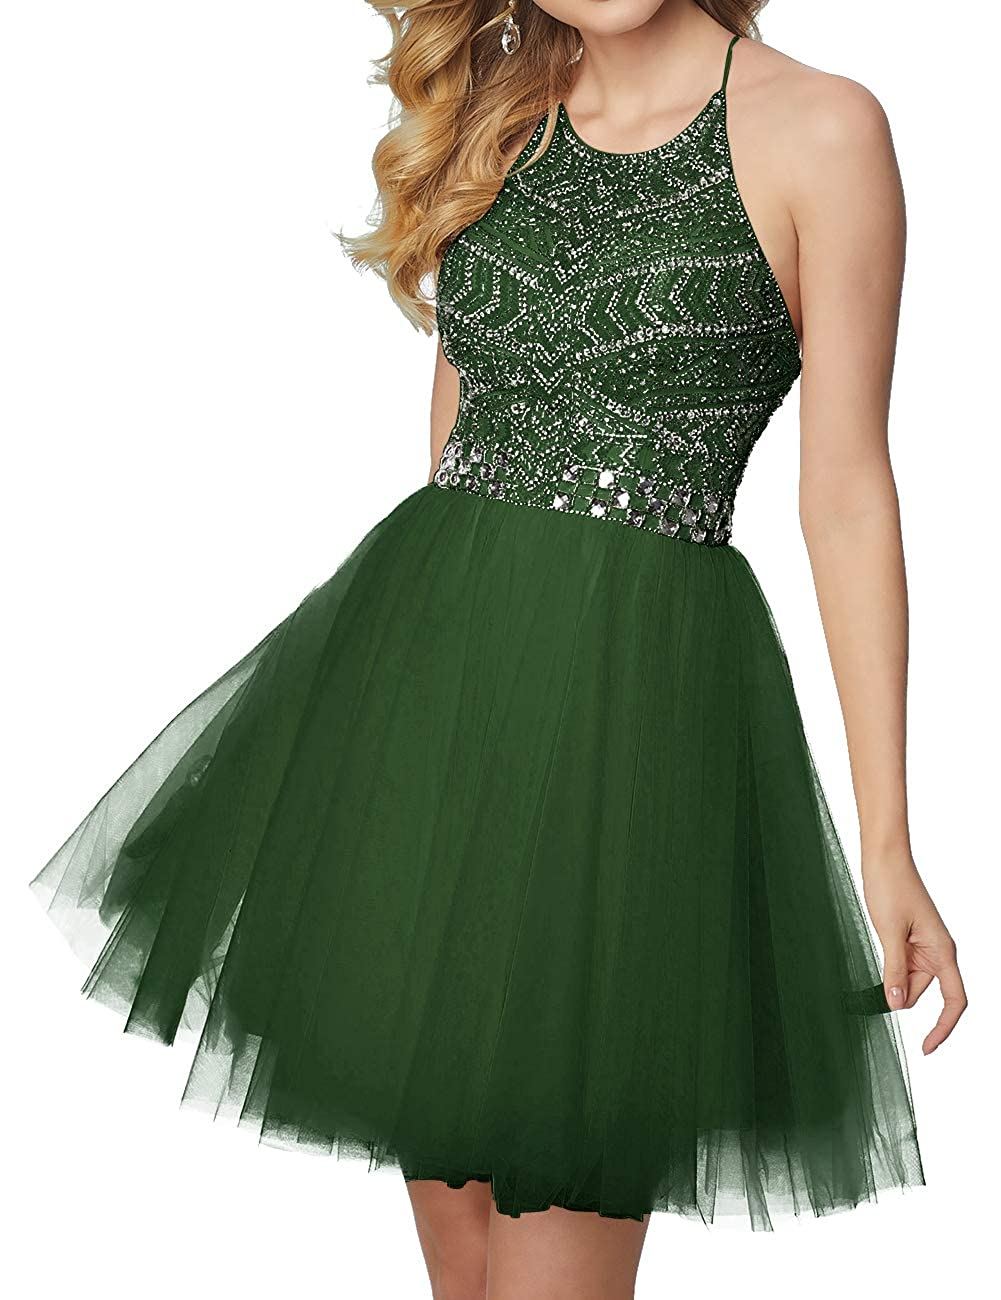 Dark_green Short Homecoming Dresses Tulle Halter Cocktail Prom Gowns Beads Formal Evening Party Dress